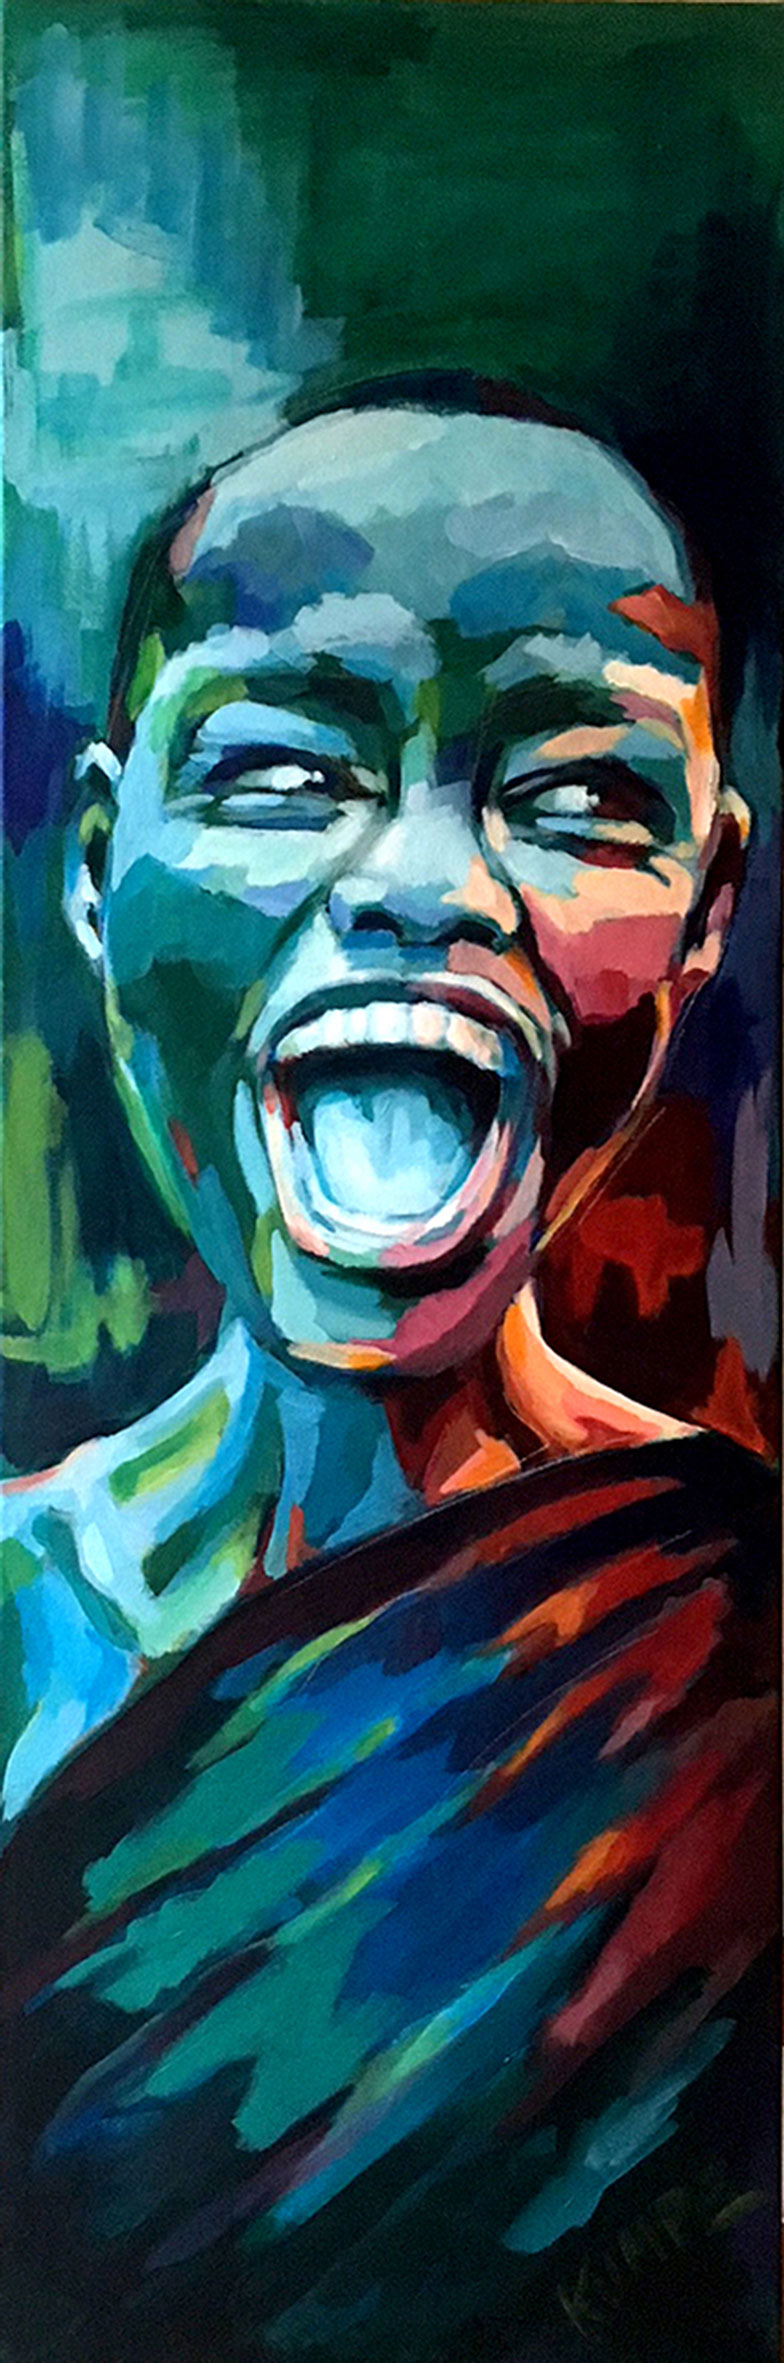 Laughing Beauty 2 Acryl 120 x 40 cm